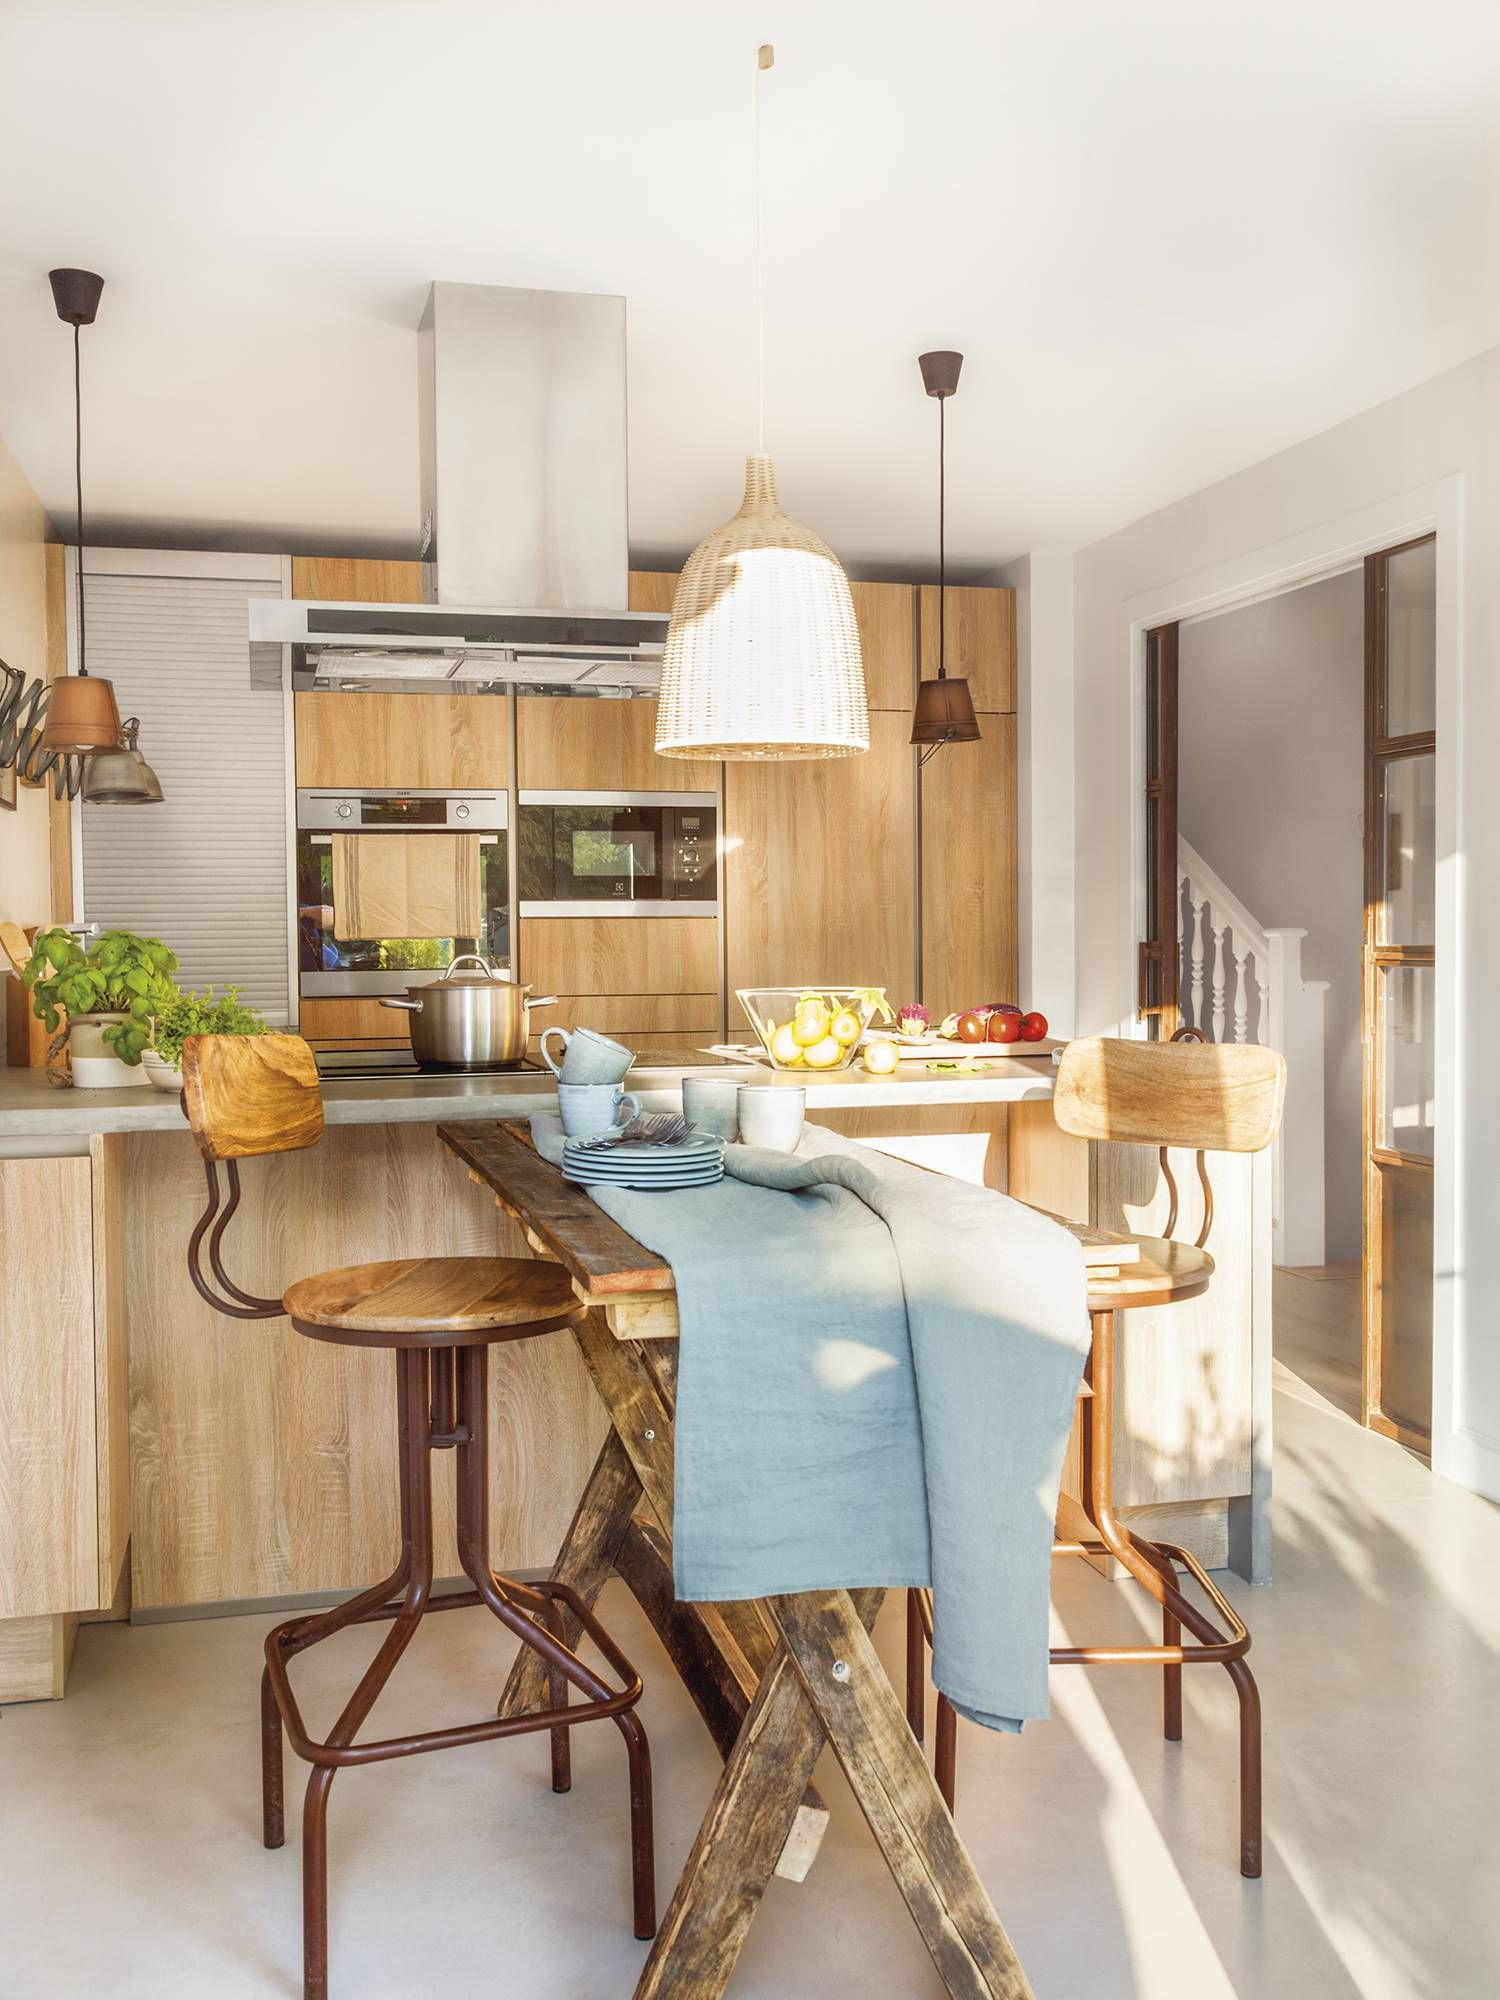 Decoraciones Cocinas Pequeñas Un Manitas En Casa En 2019 Kitchens Contemporary Kitchen